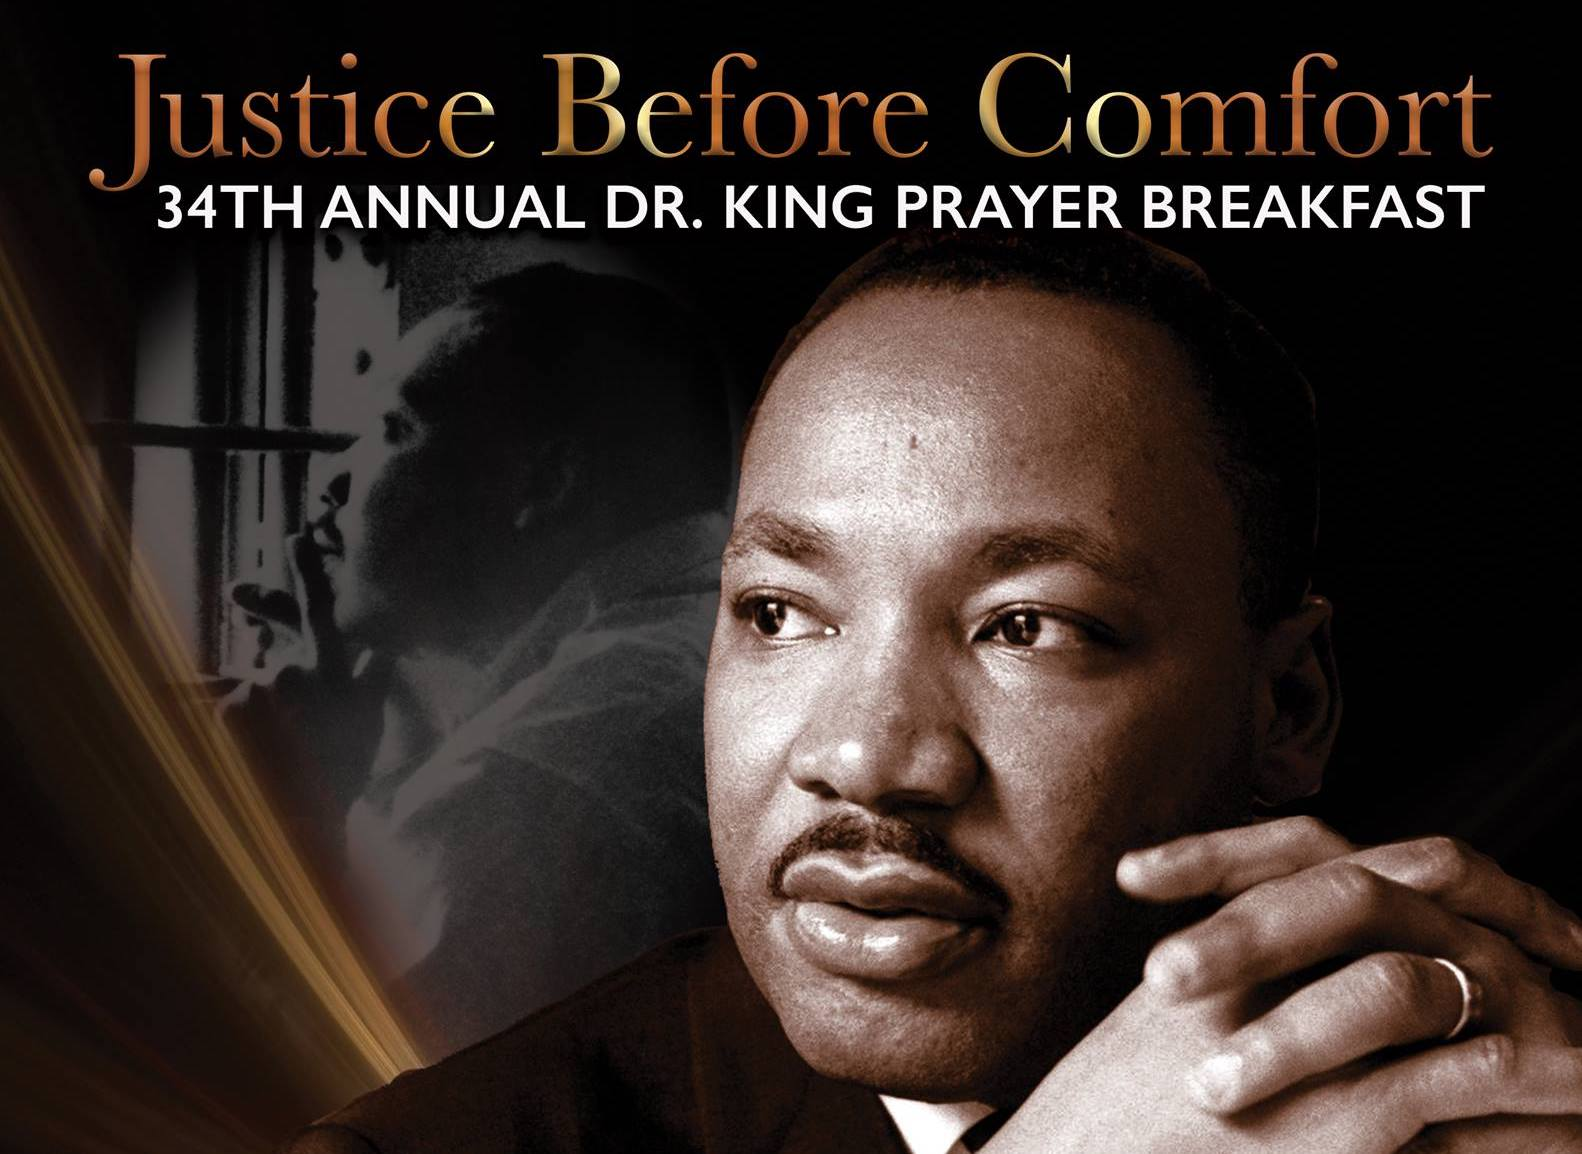 Dr. Martin Luther King Jr. Prayer Breakfast Image